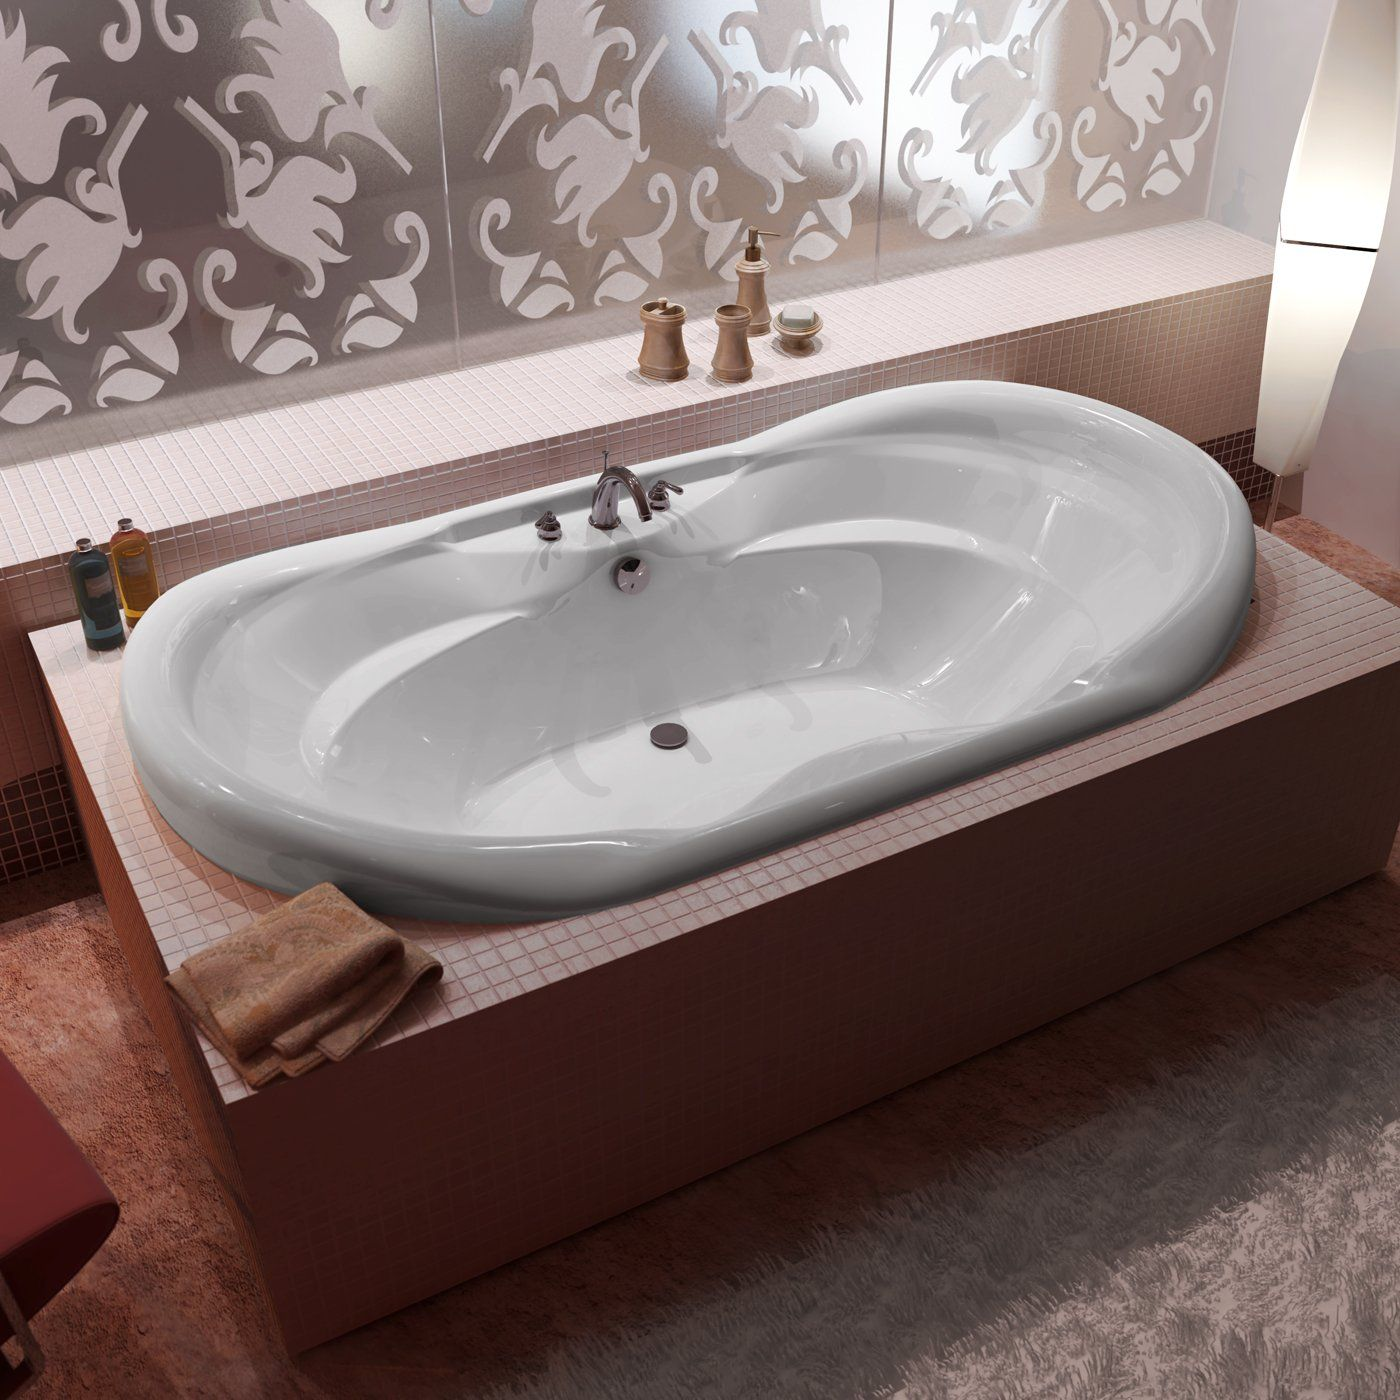 This Indulgence air tub from Atlantis is constructed of acrylic with ...